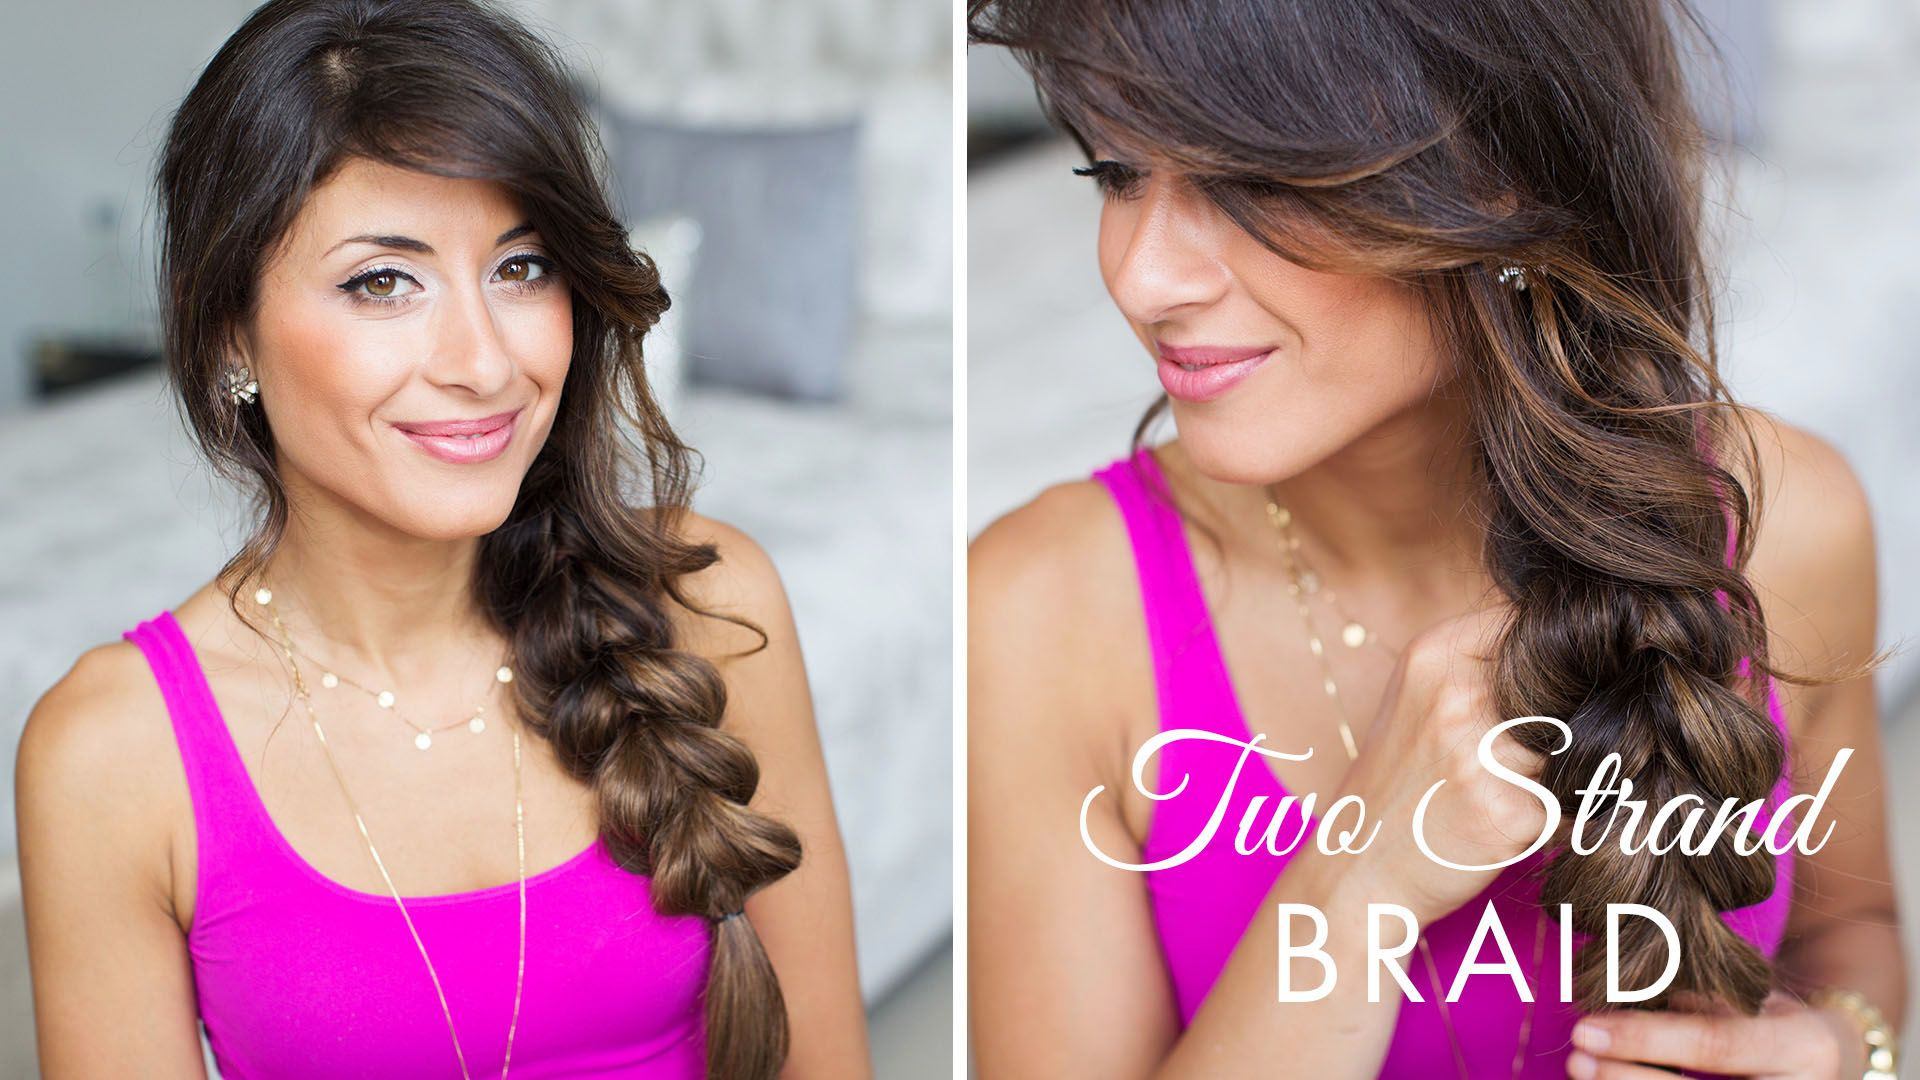 Two strand braid hairstyle using ombre chestnut luxy hair extensions